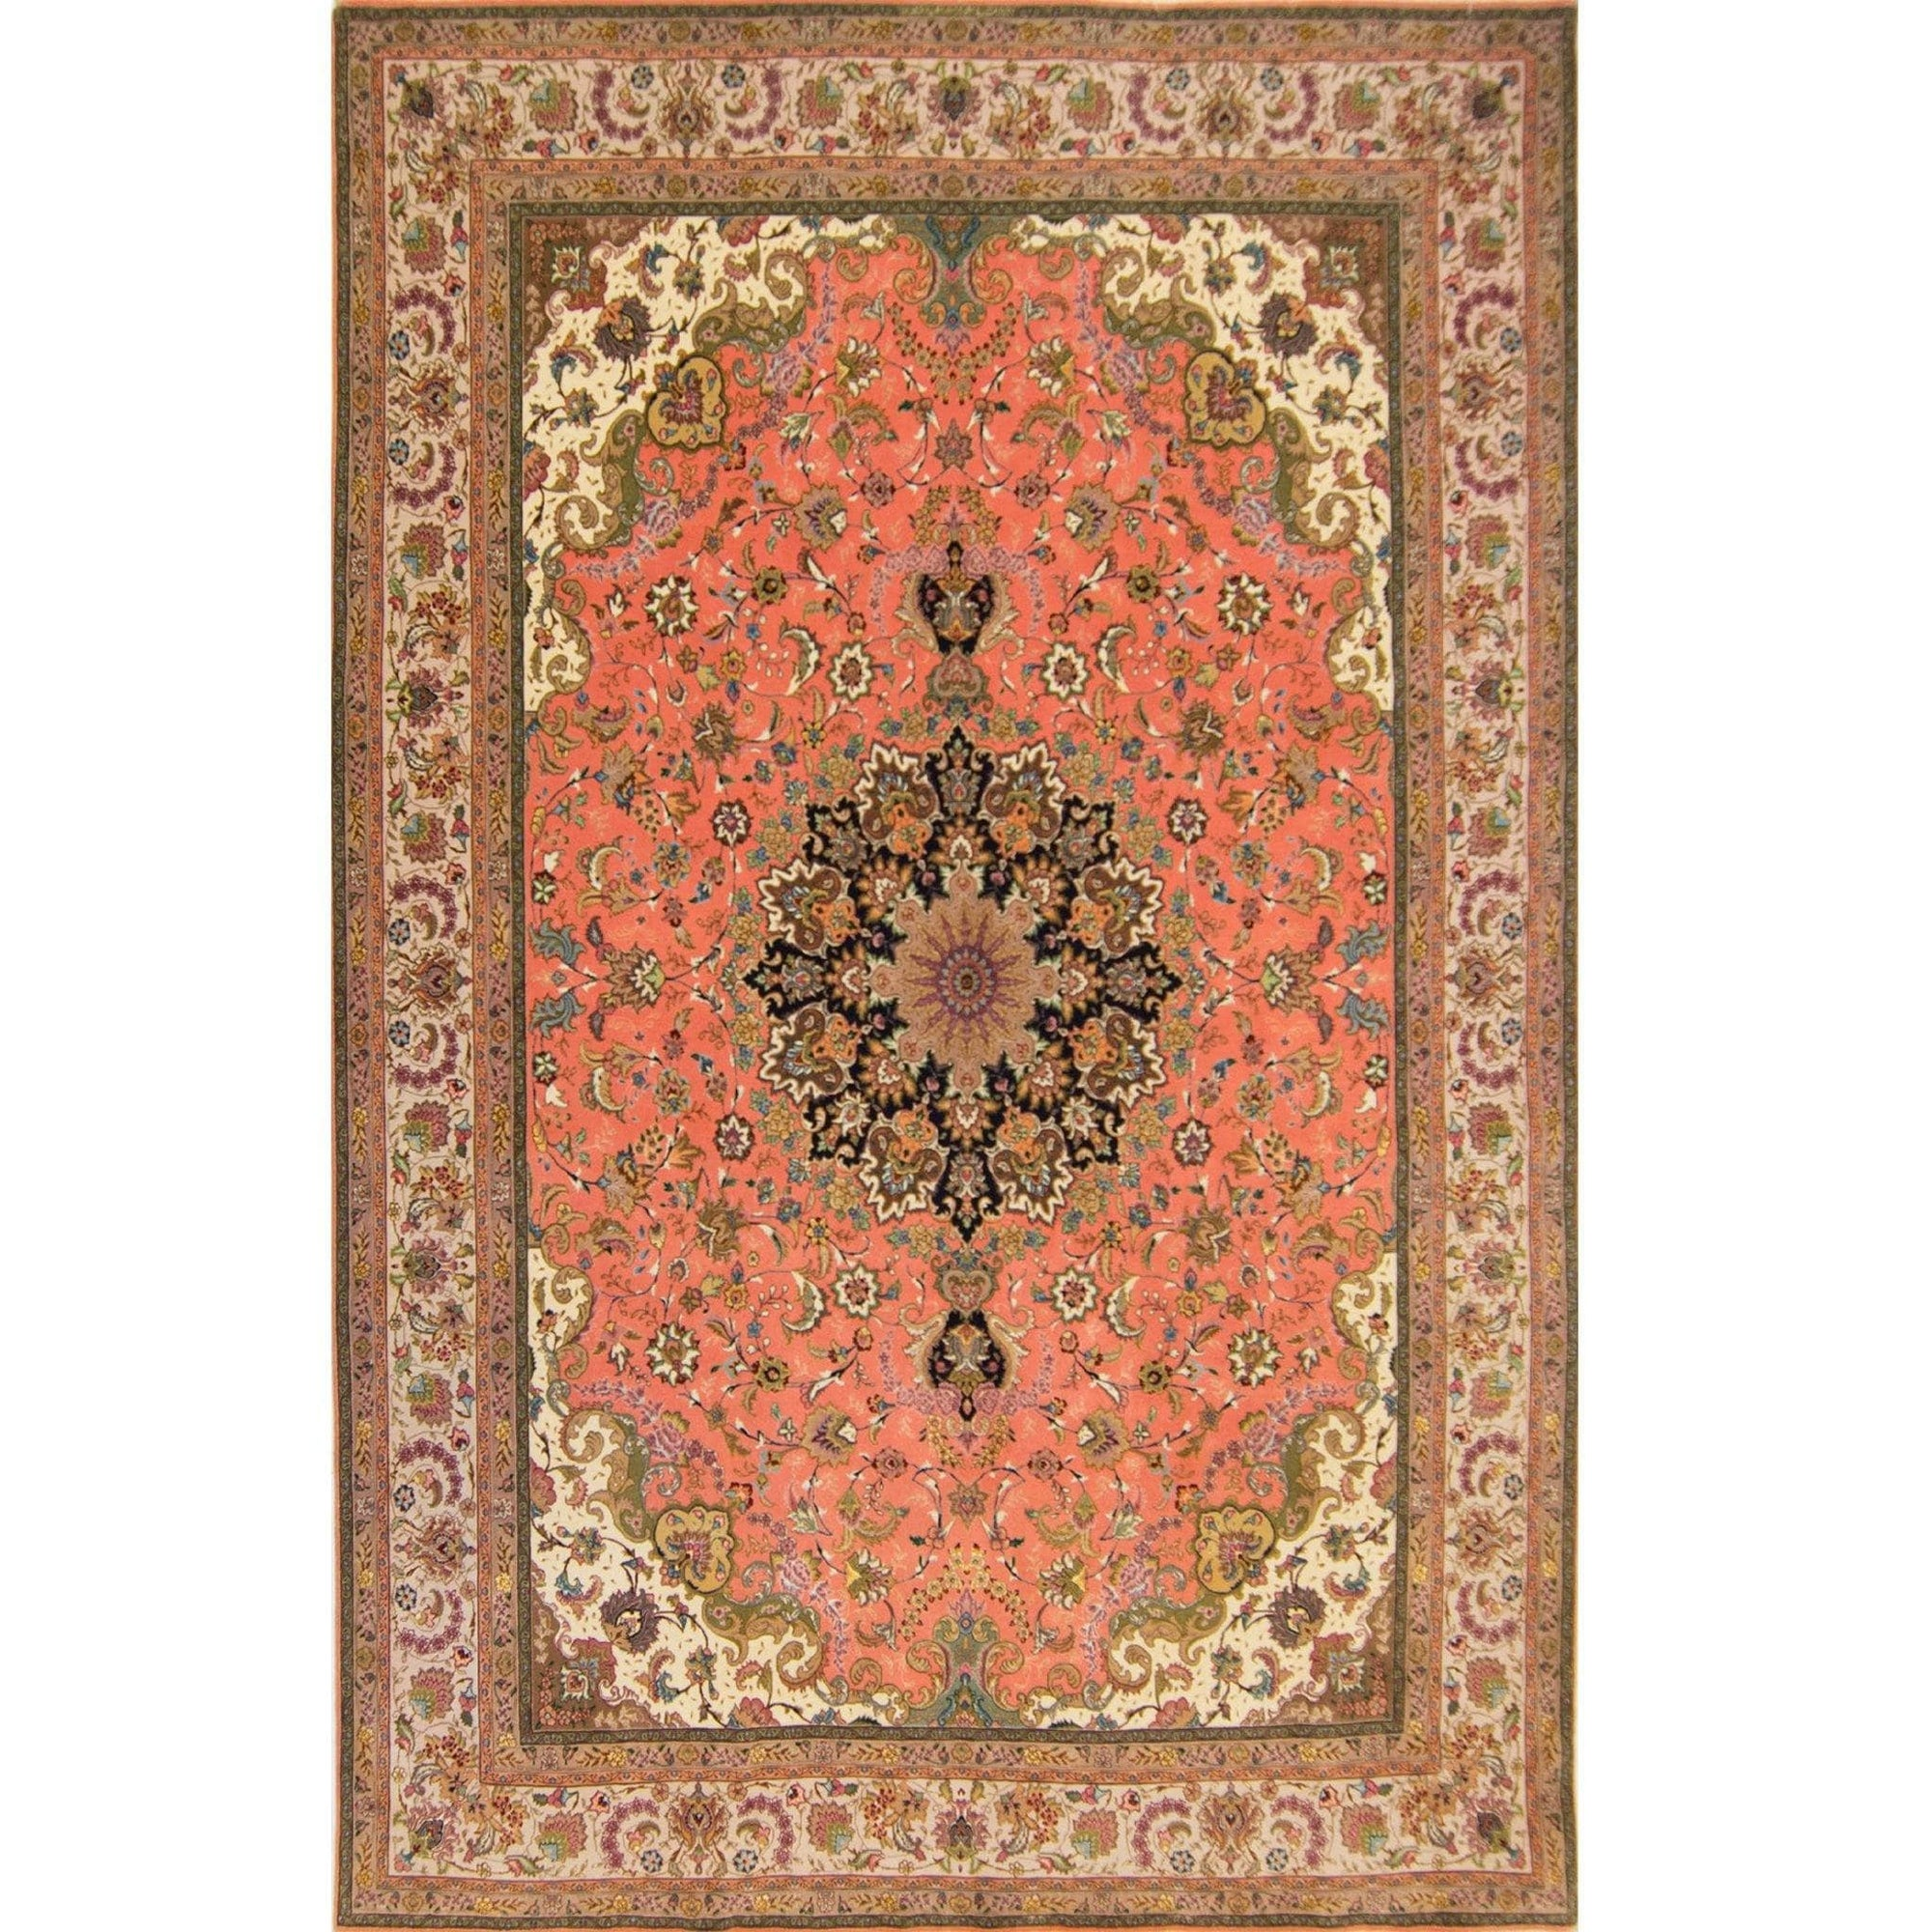 Super Fine Hand-knotted Wool and Silk Tabriz Rug 241cm x 350cm Persian-Rug | House-of-Haghi | NewMarket | Auckland | NZ | Handmade Persian Rugs | Hand Knotted Persian Rugs